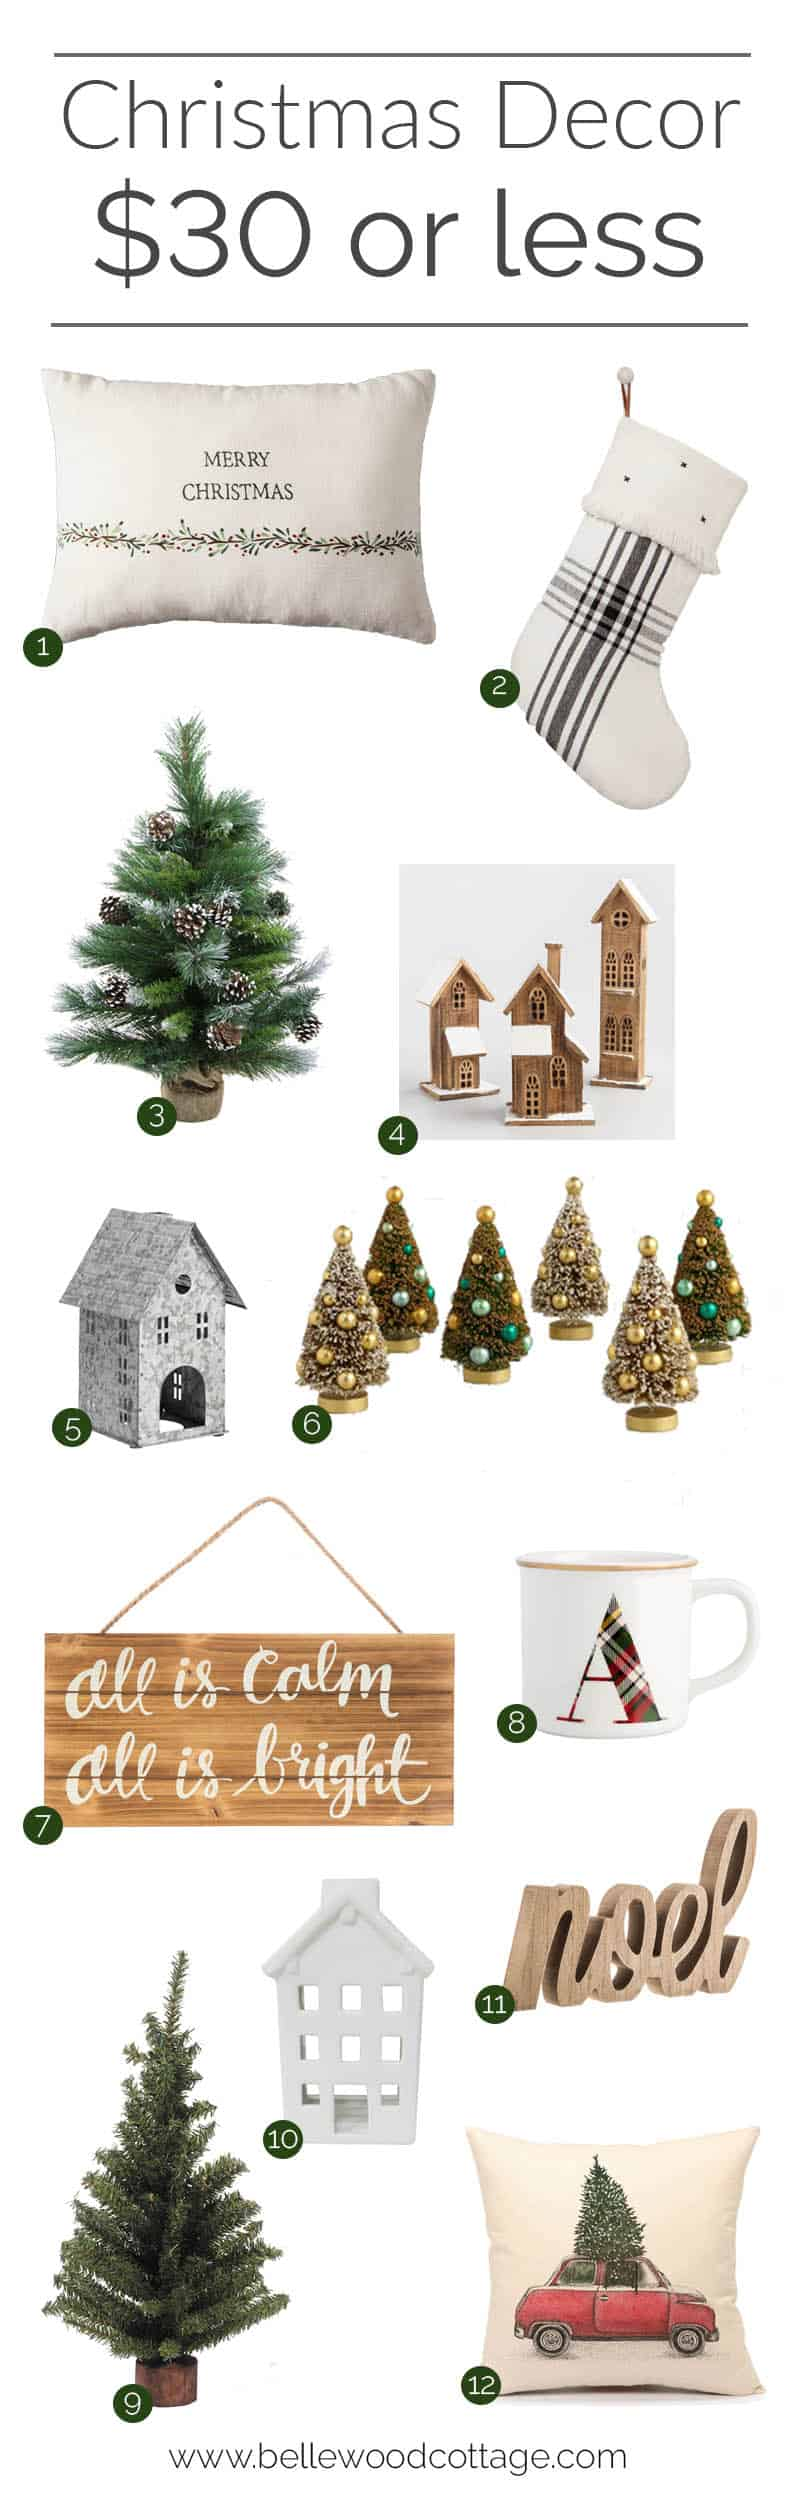 Deck the halls with this round up of budget friendly Christmas decor! Everything is $30 or less, making it easy to stay on budget this holiday season.